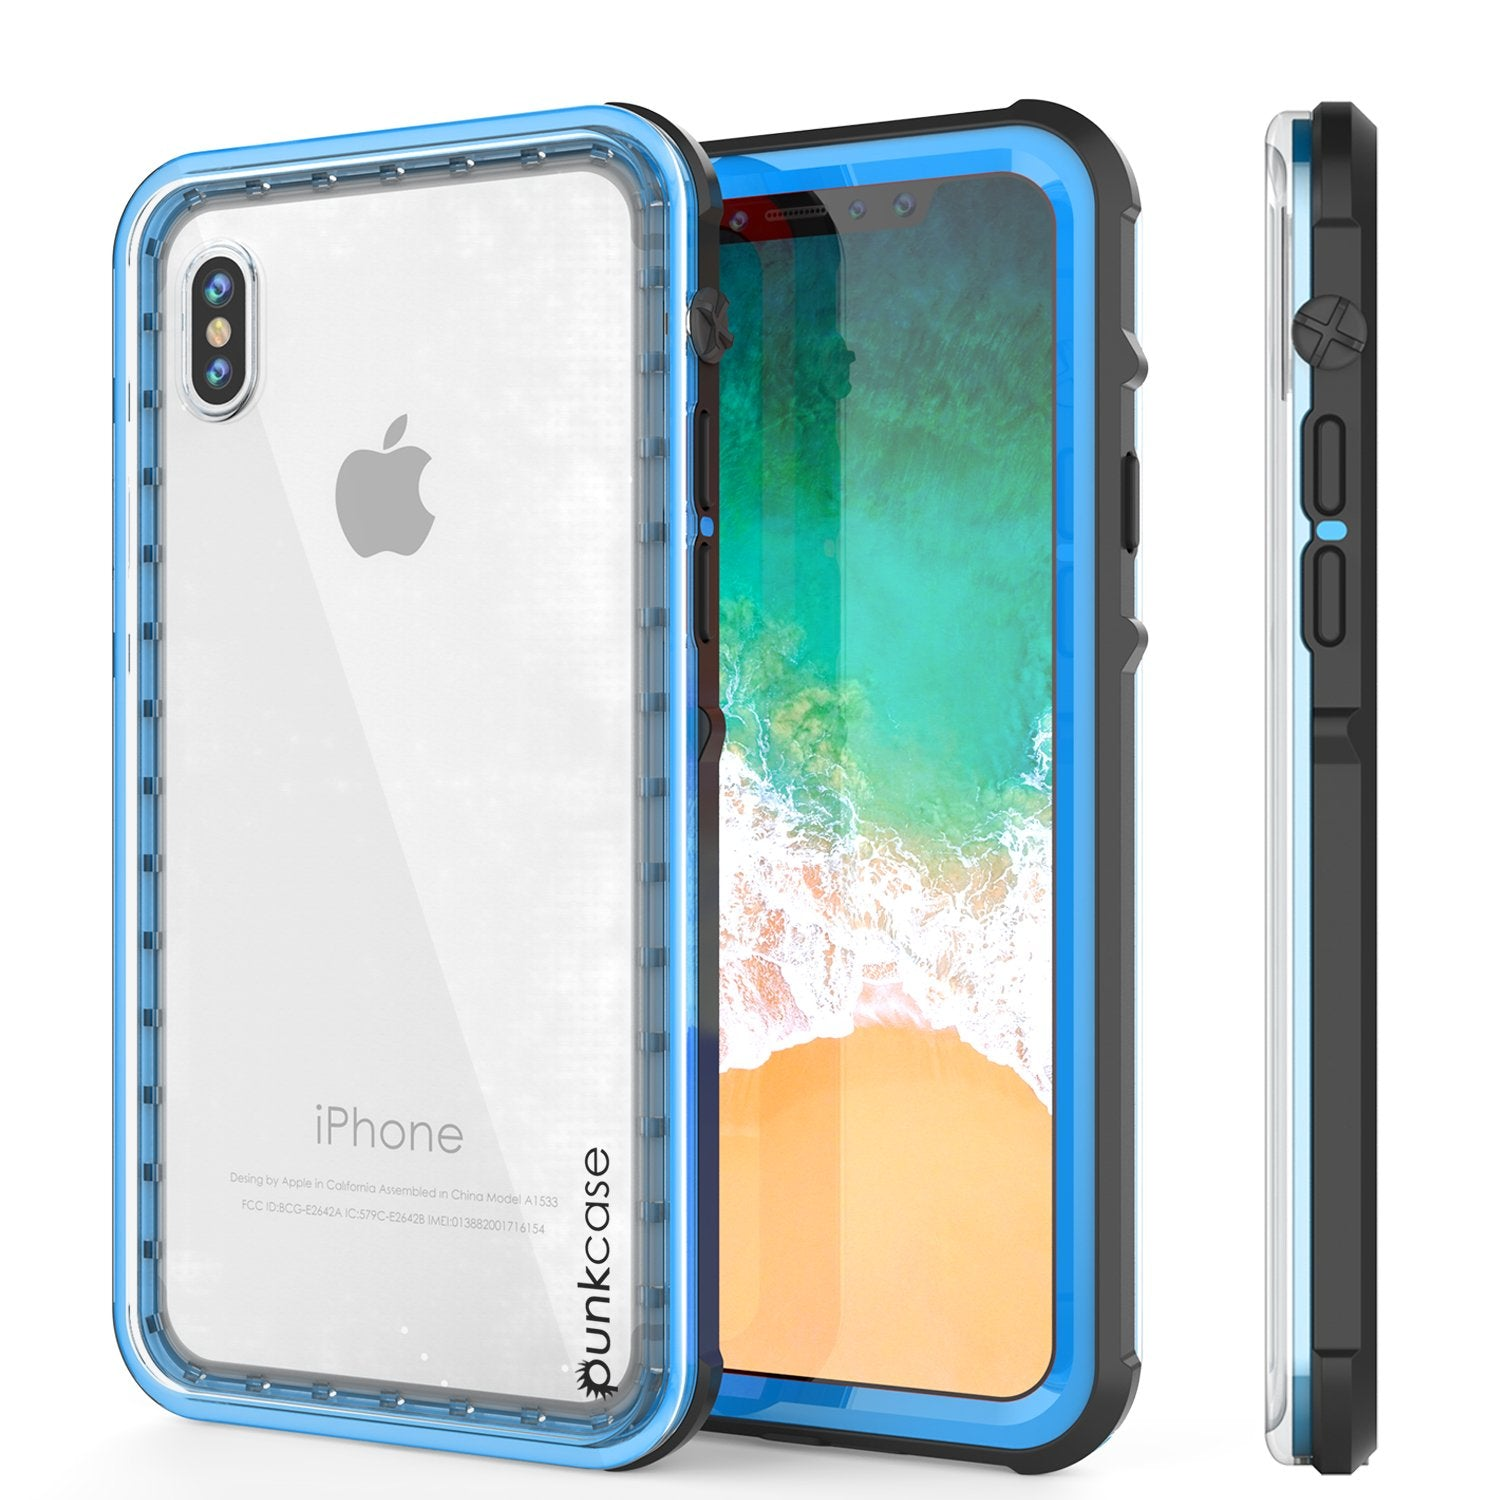 iPhone XS Case, PUNKCase [CRYSTAL SERIES] Protective IP68 Certified Cover [Light Blue]